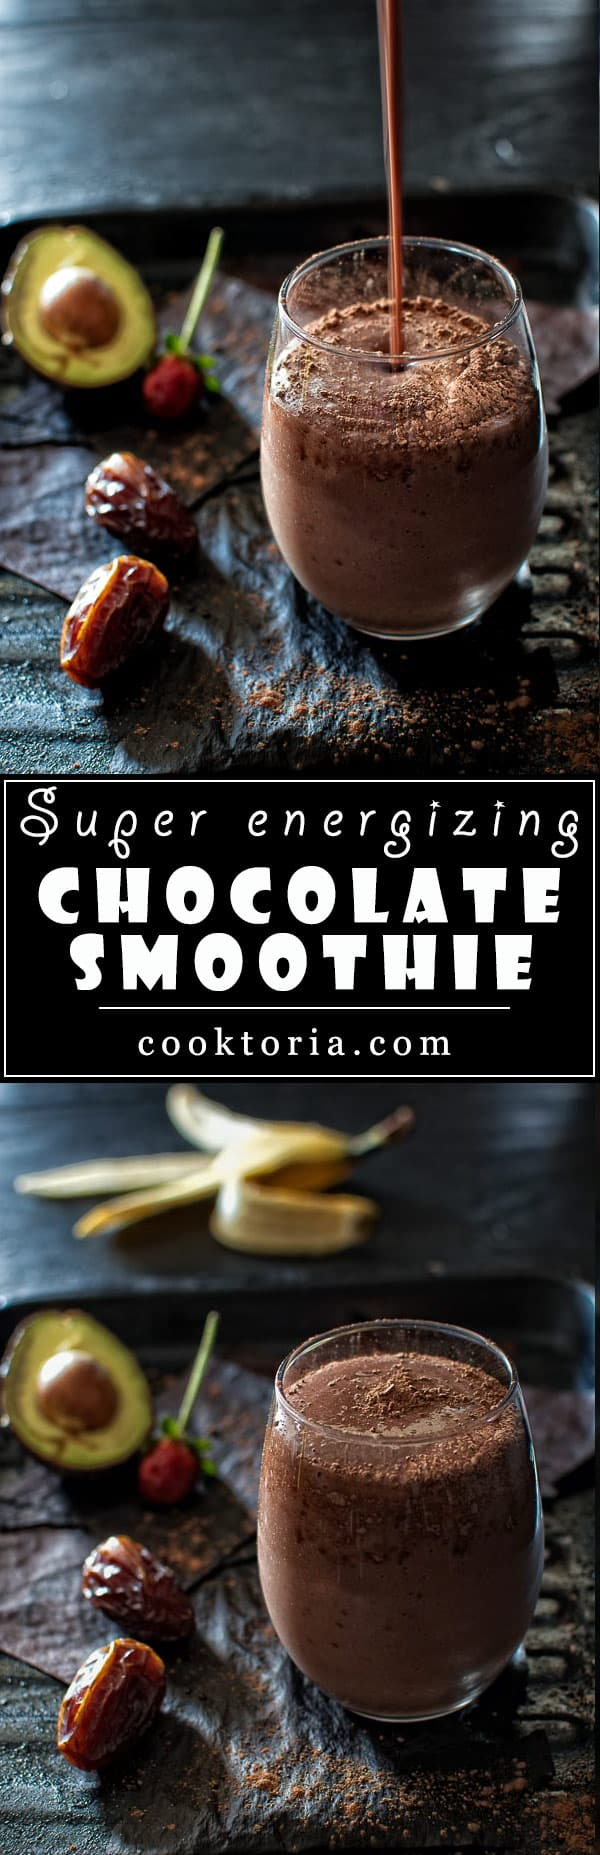 Packed with strawberries, banana and avocado, and sweetened with dates and a touch of honey - this Super Energizing Chocolate Smoothie will fill you up and satisfy your chocolate cravings. ❤ COOKTORIA.COM